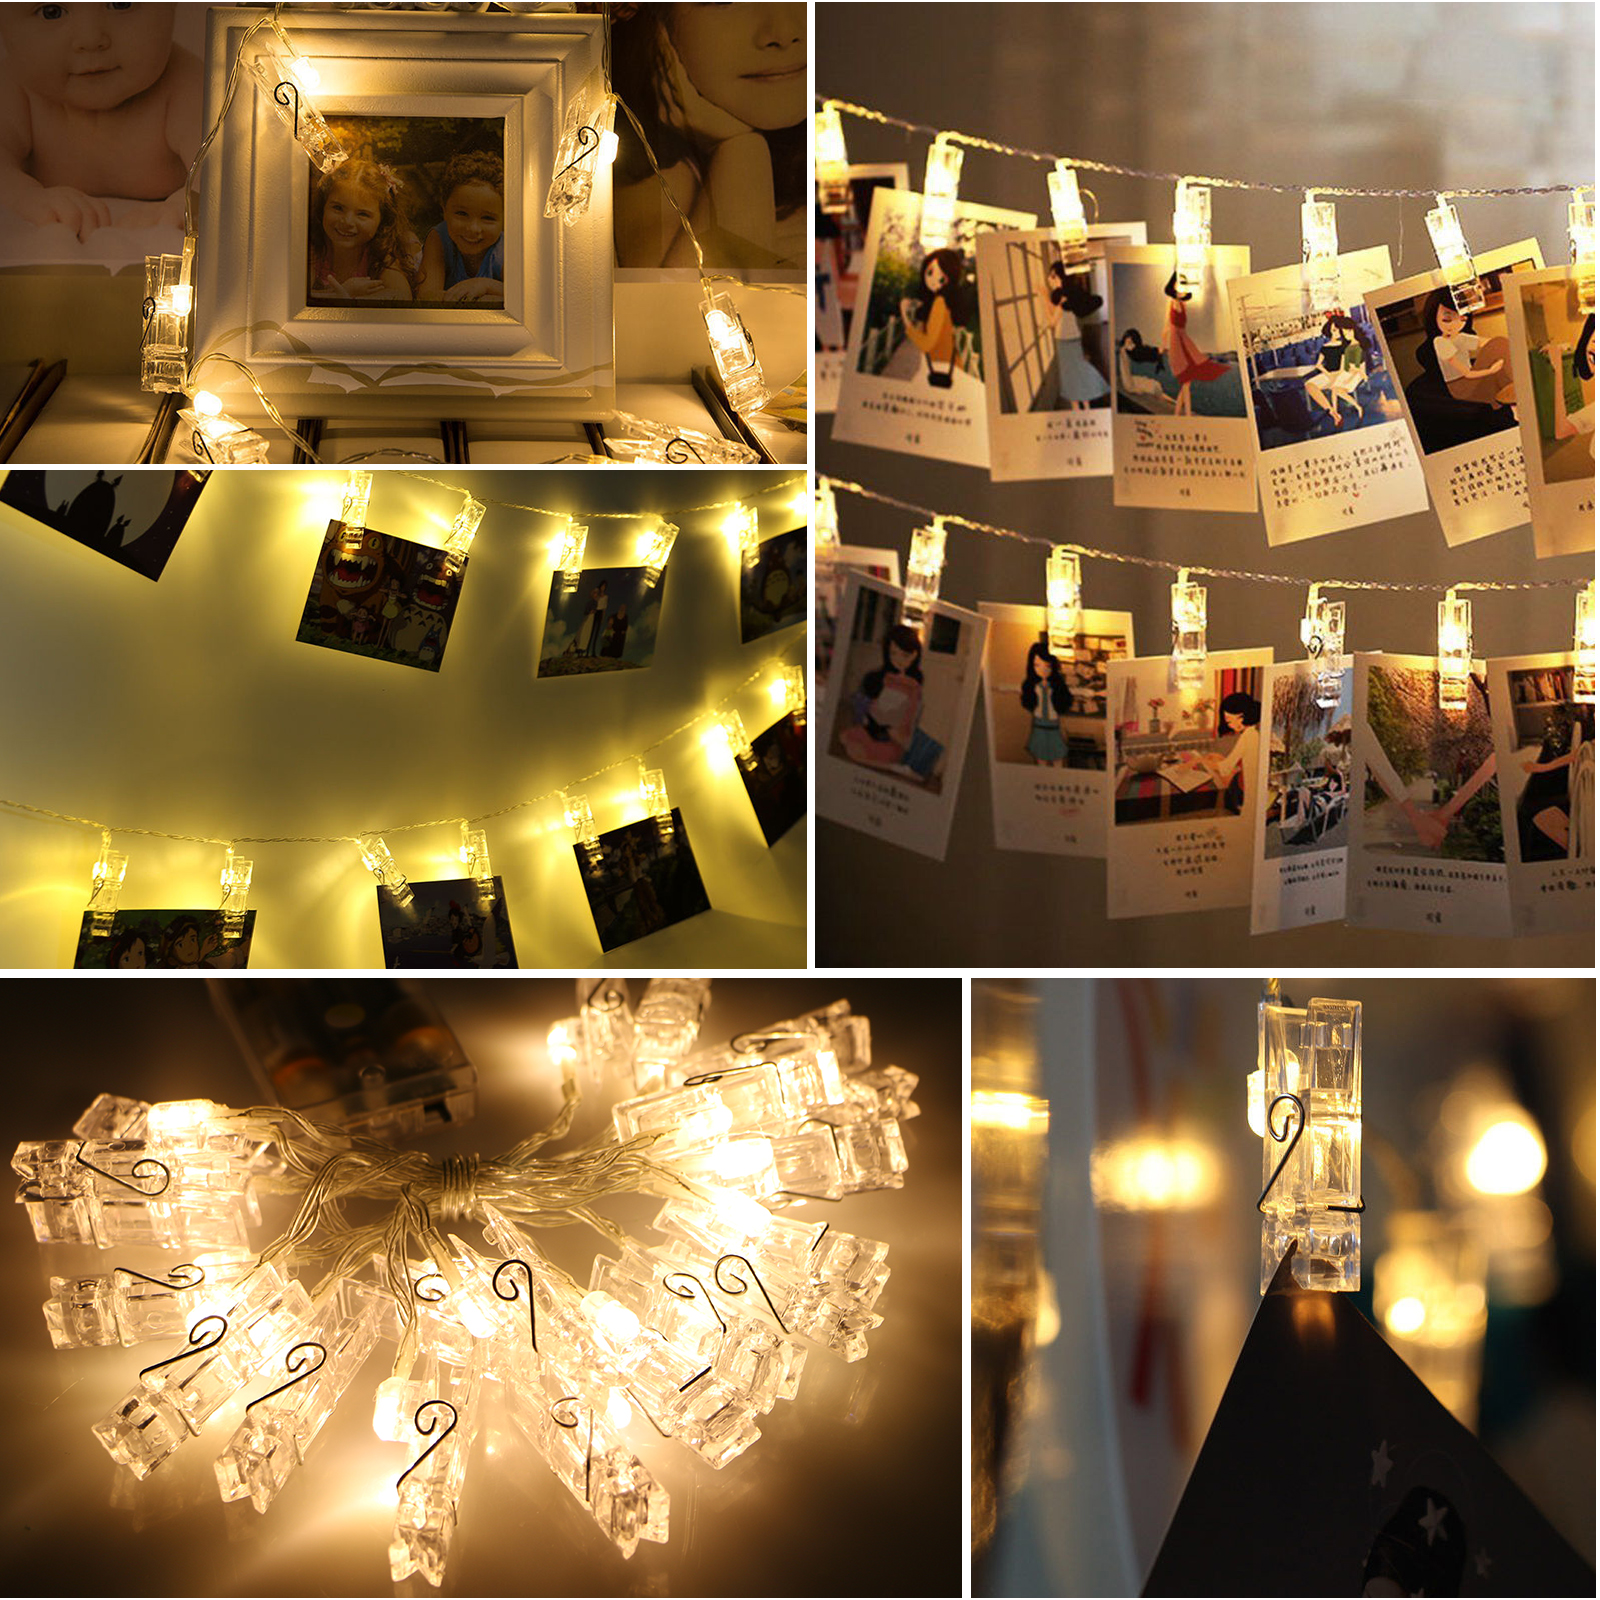 EEEKit 2-Pack 20 Clip LED Photo String Light Battery Powered Fairy Wedding Party Christmas Home Decoration for Hanging Photos Cards and Artwork